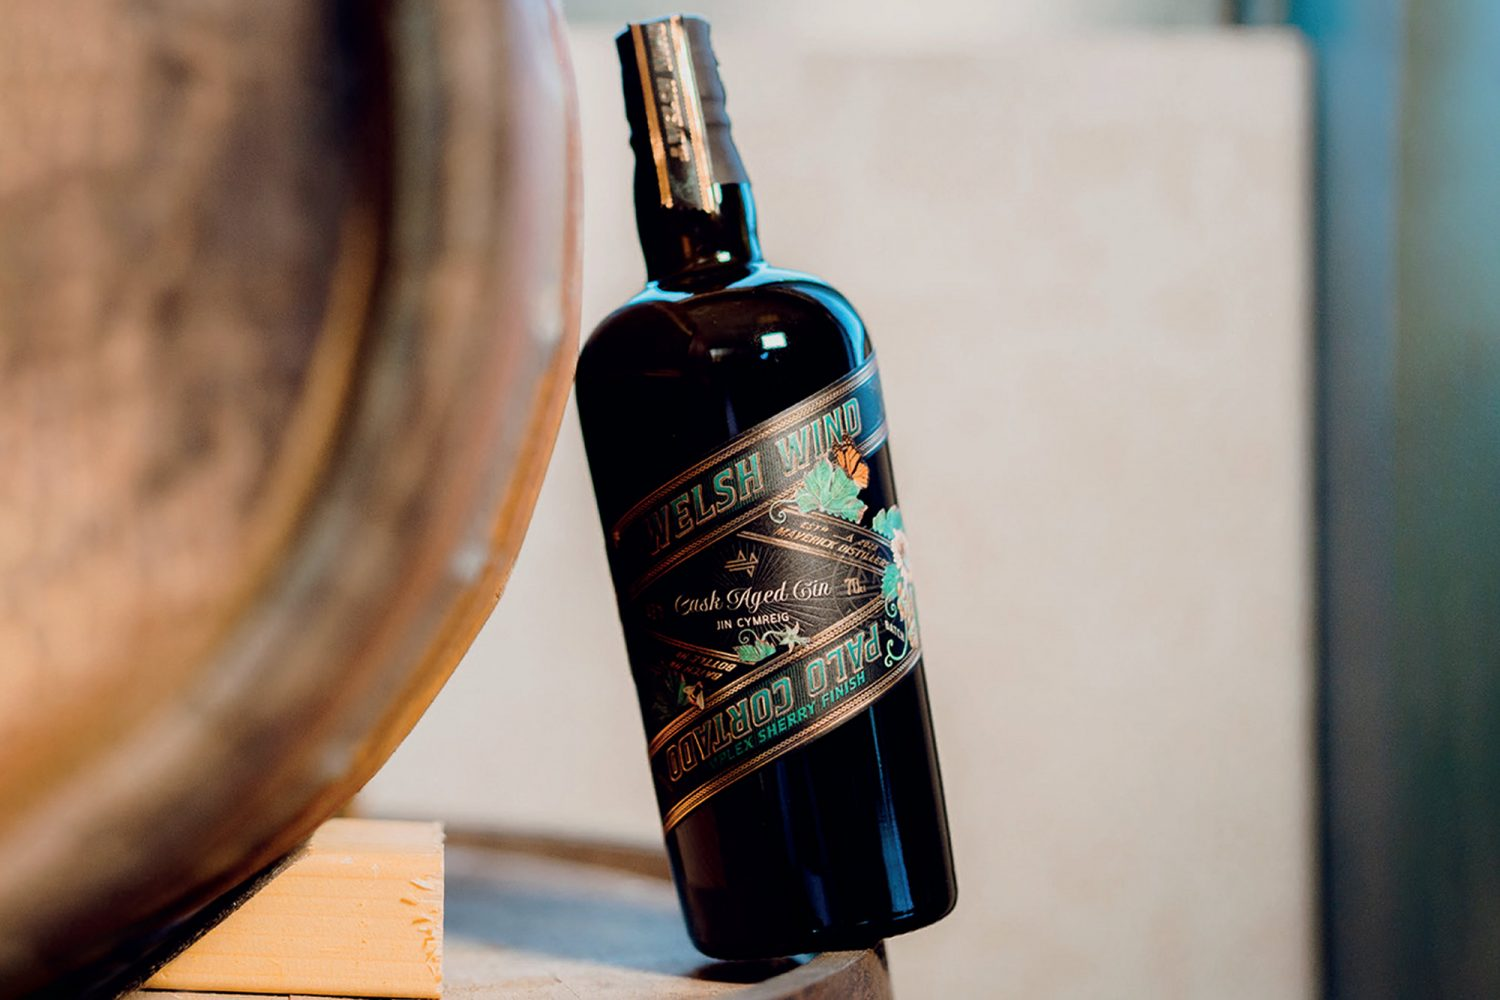 In the Welsh Wind Palo Cortado Limited Edition